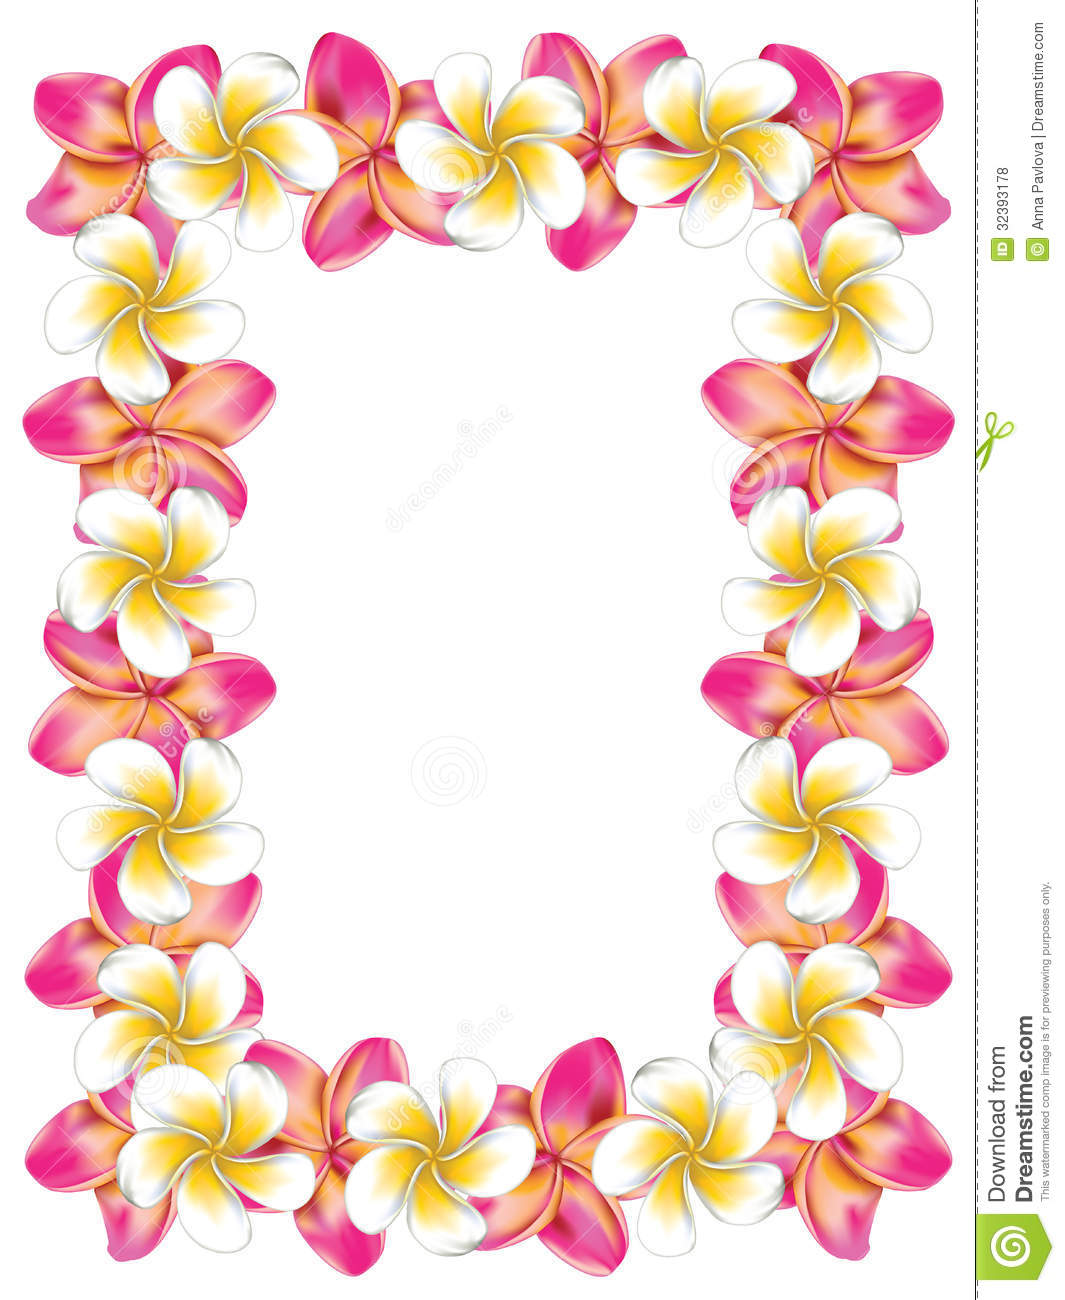 Hawaiian Frames Clipart - Clipart Kid